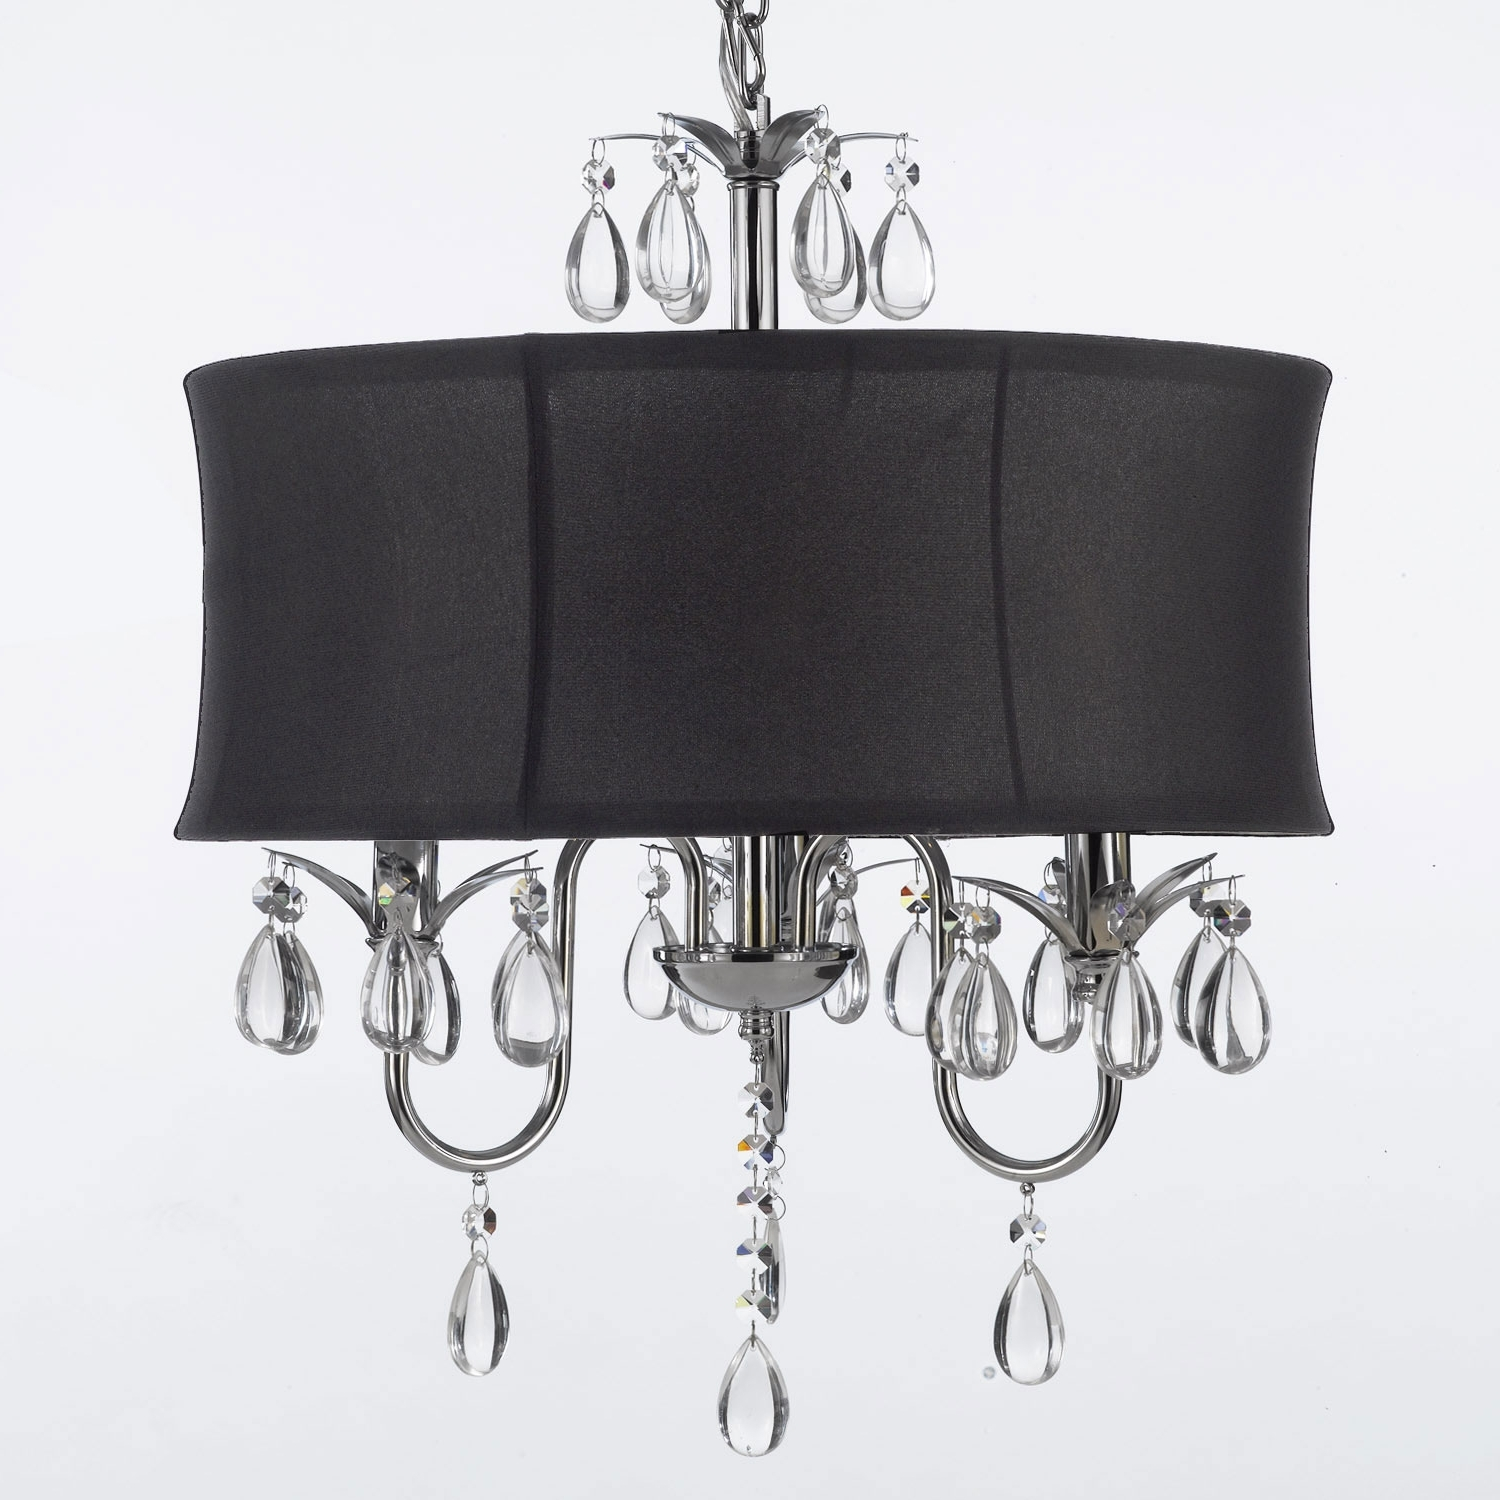 Popular Modern Black Chandelier With Chandelier: Interesting Black Crystal Chandeliers Black Chandelier (View 14 of 15)